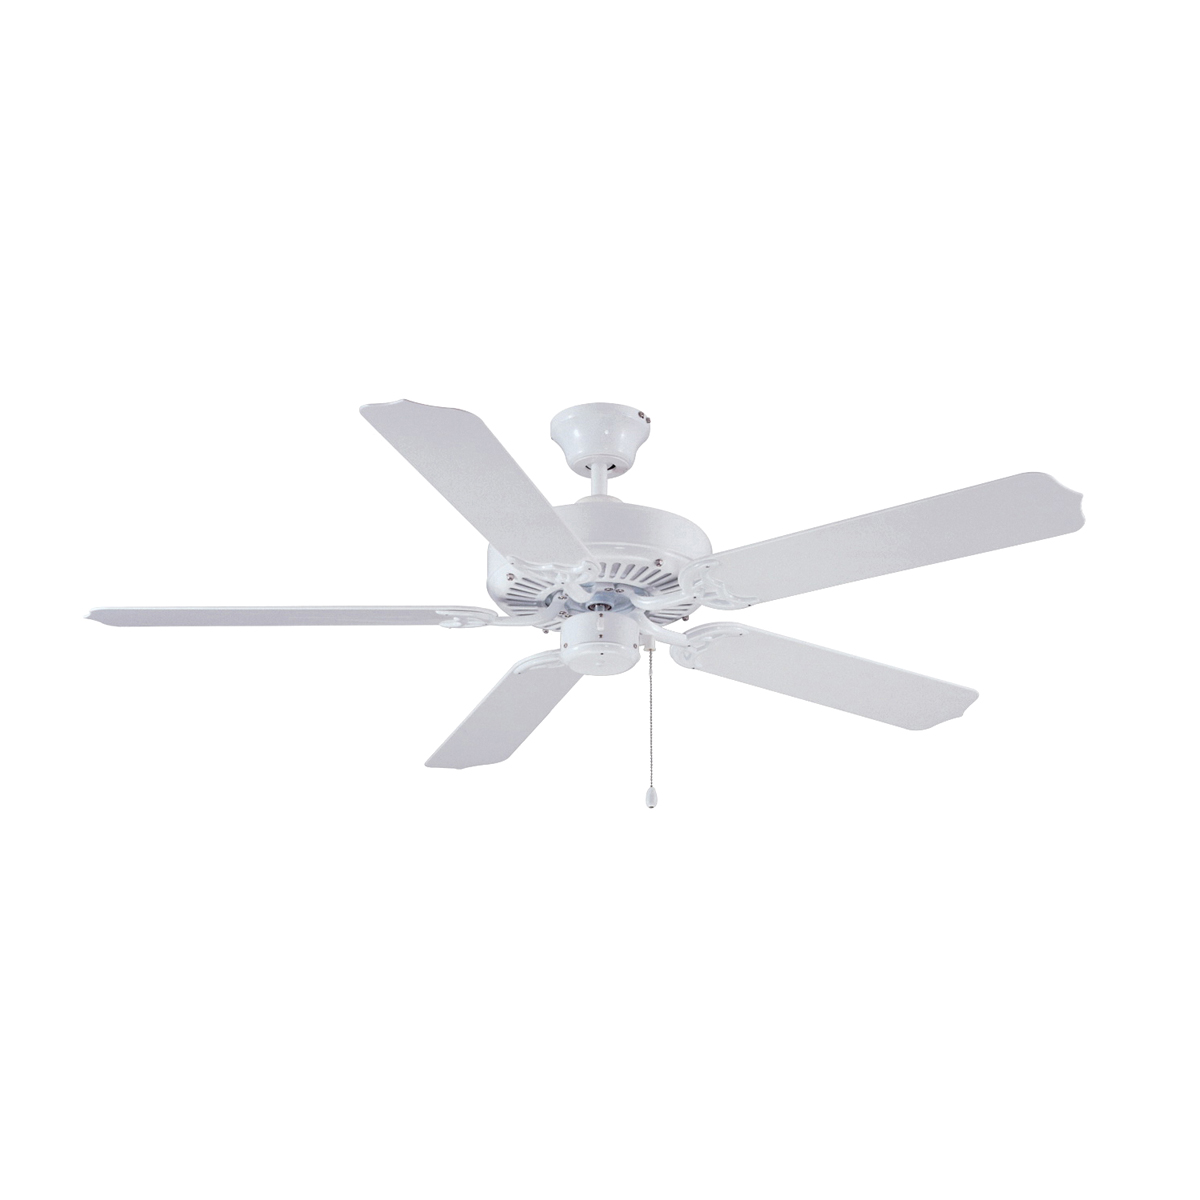 Picture of Boston Harbor CF-78092 Ceiling Fan, 0.8 A, 120 V, 5-Blade, 52 in Sweep, 3166 cfm Air, White Housing